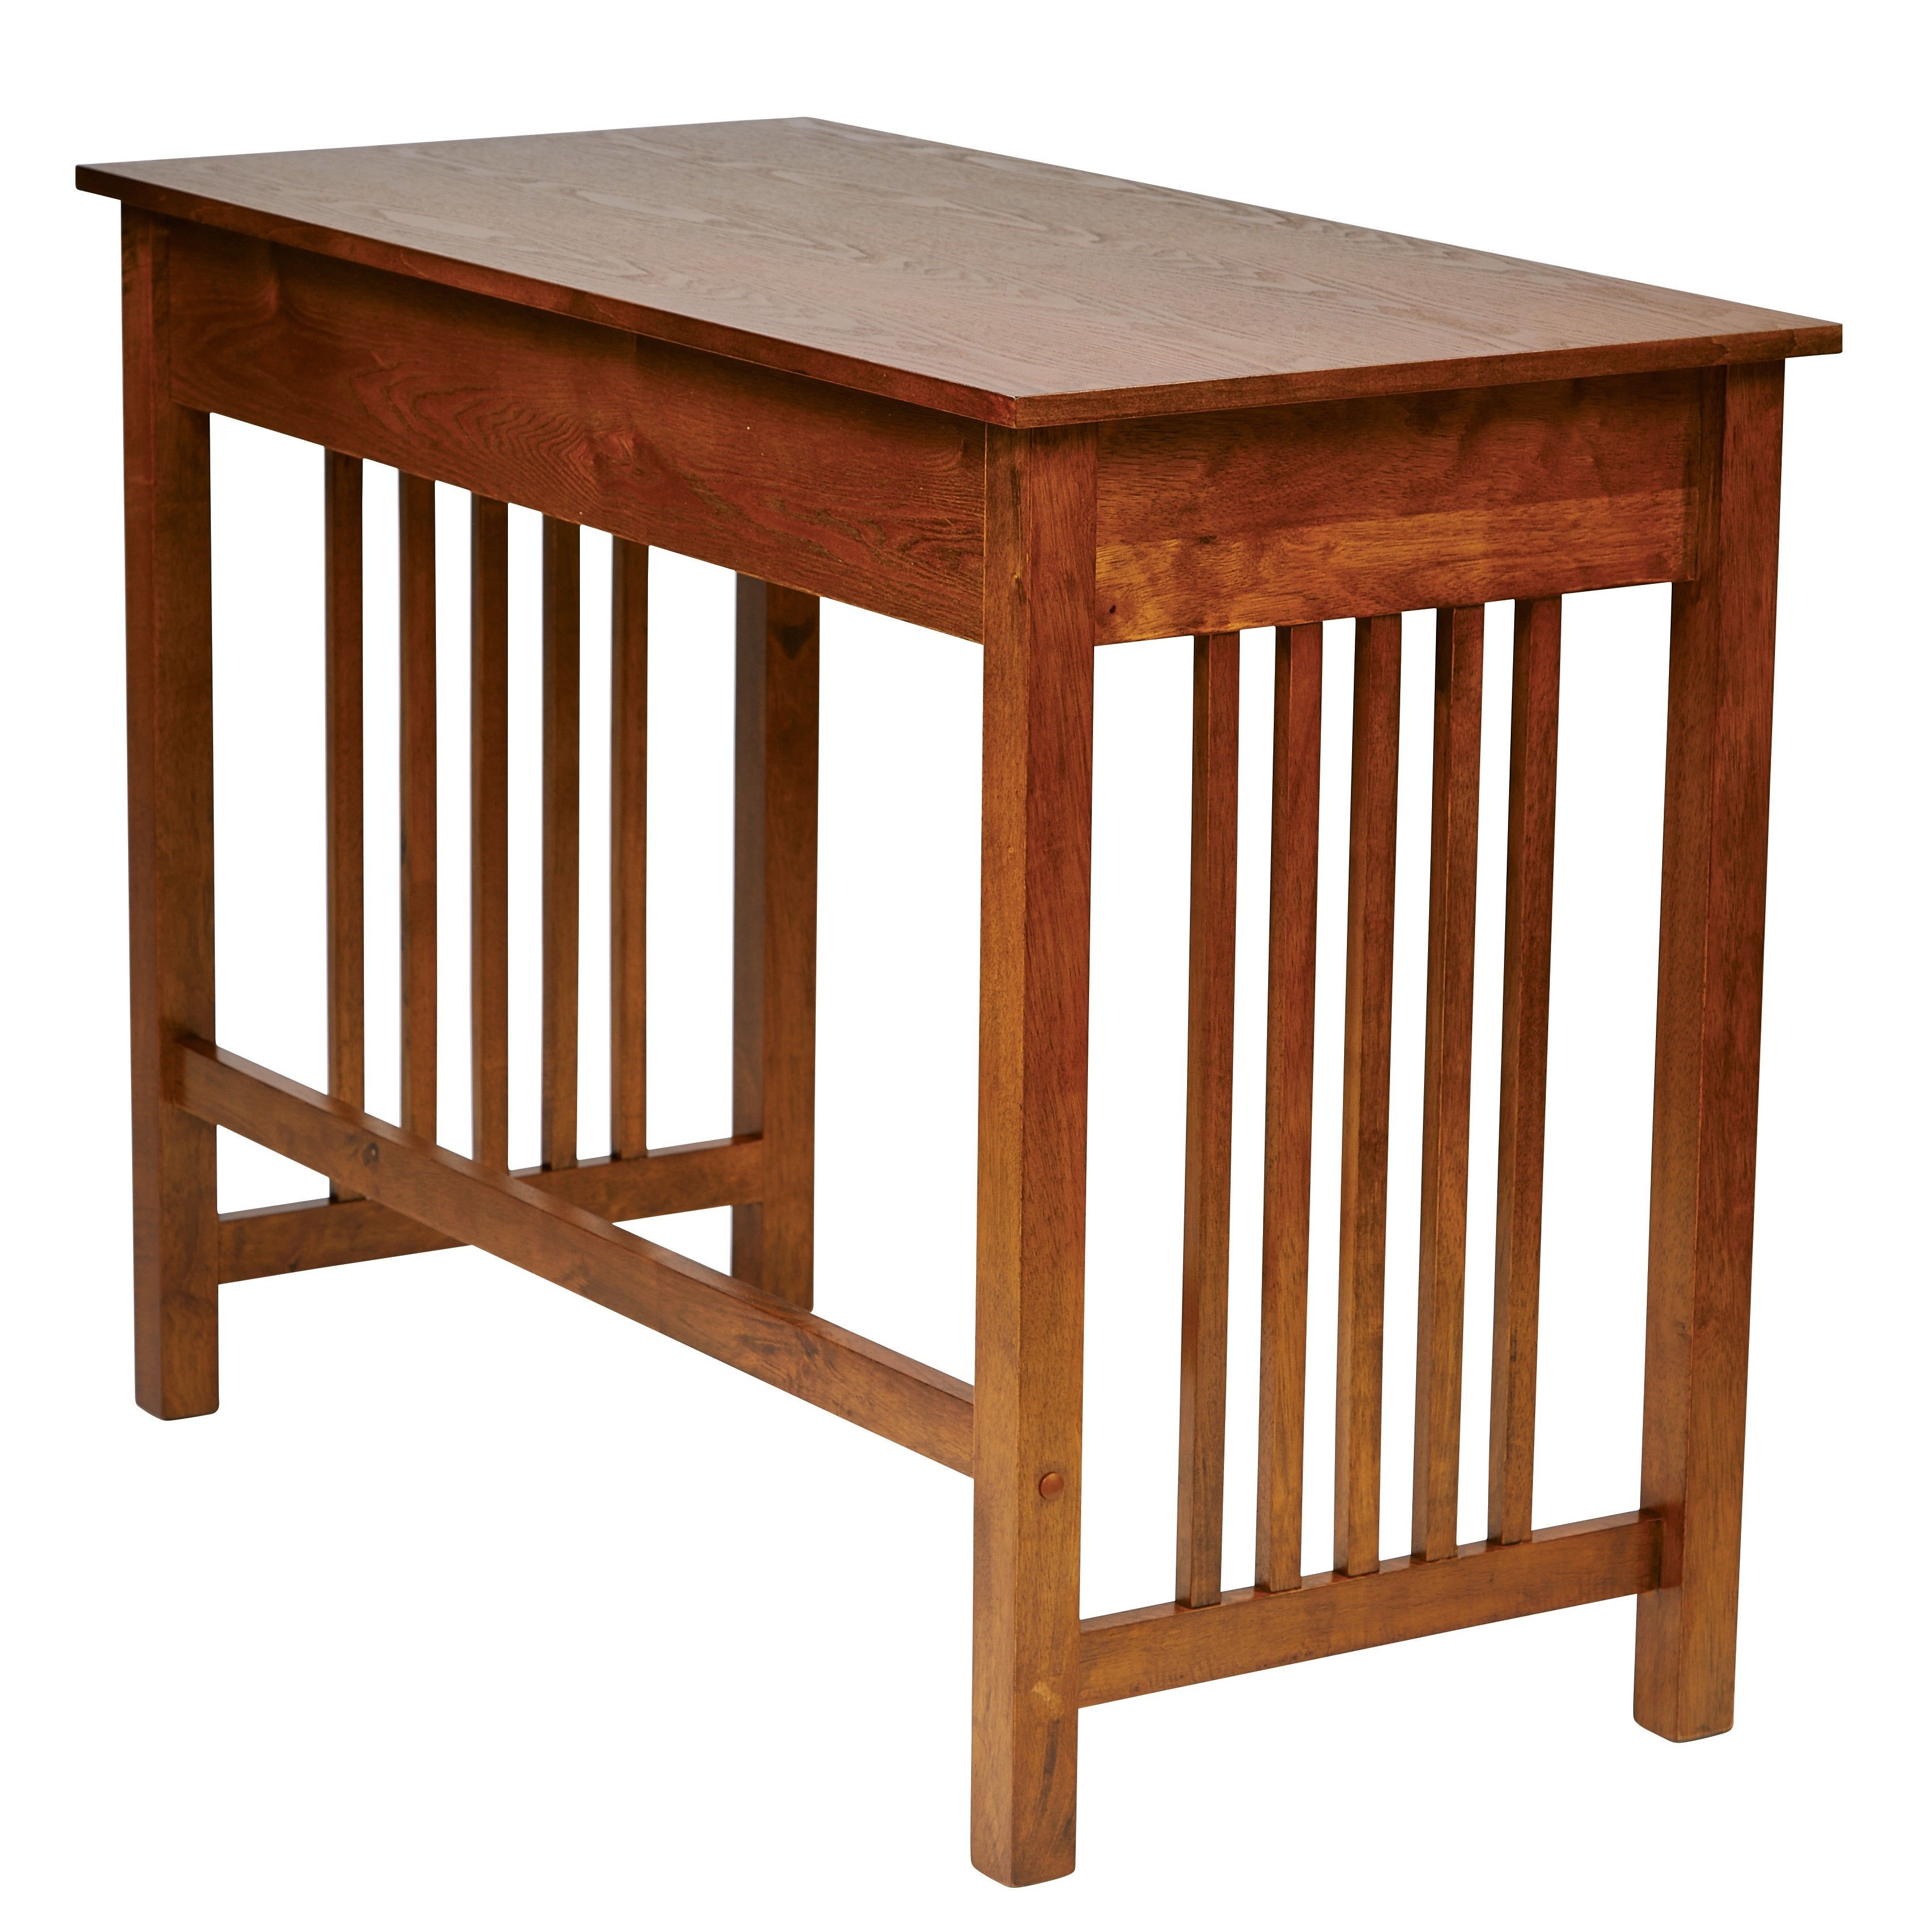 Osp Home Furnishings Mission Desk In Ash Oak Finish With Pull Out Drawer Solid Wood Legs On Free Shipping Today 20603116